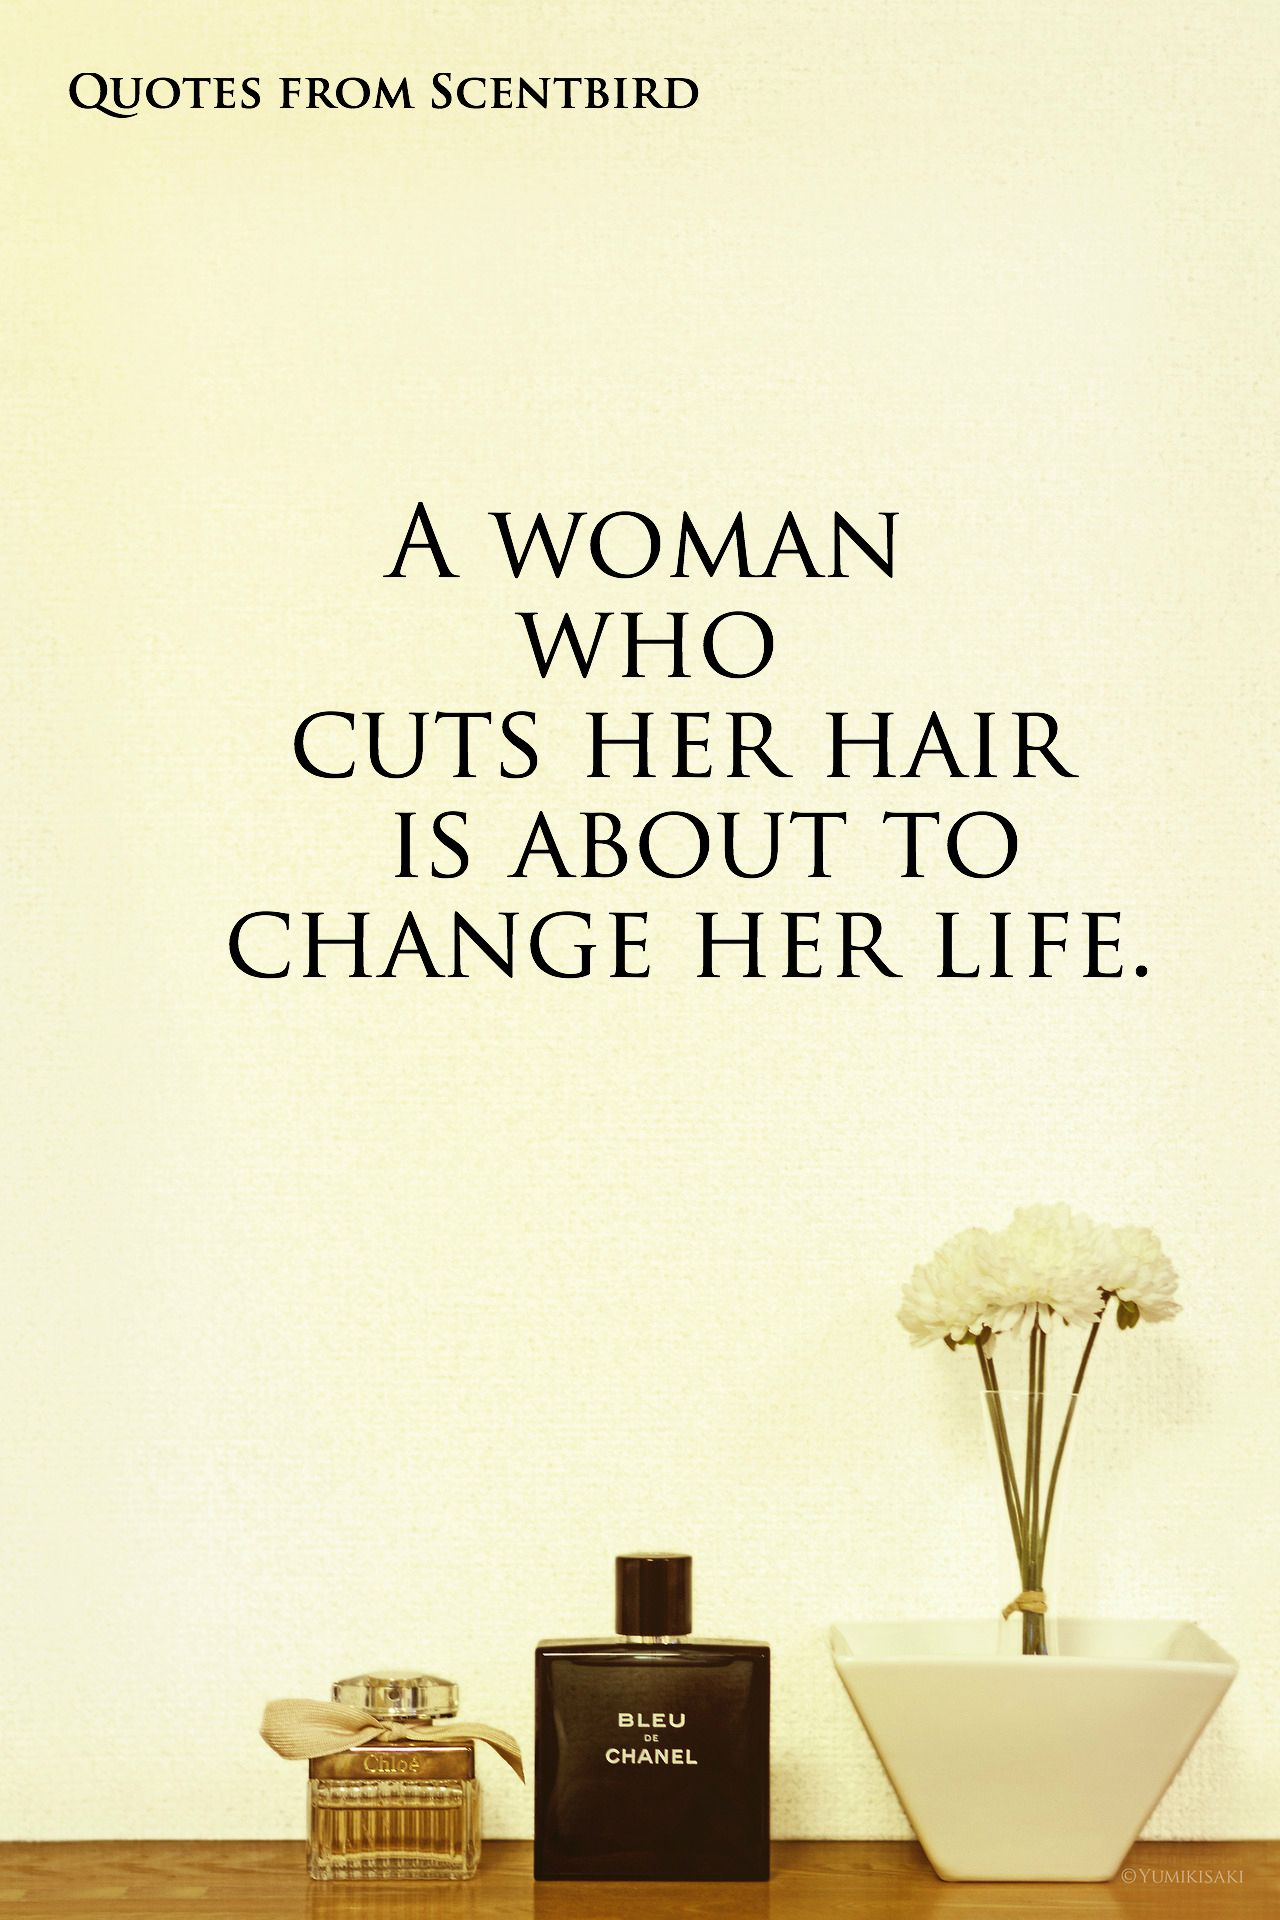 When A Woman Cuts Her Hair  Uphairstyle